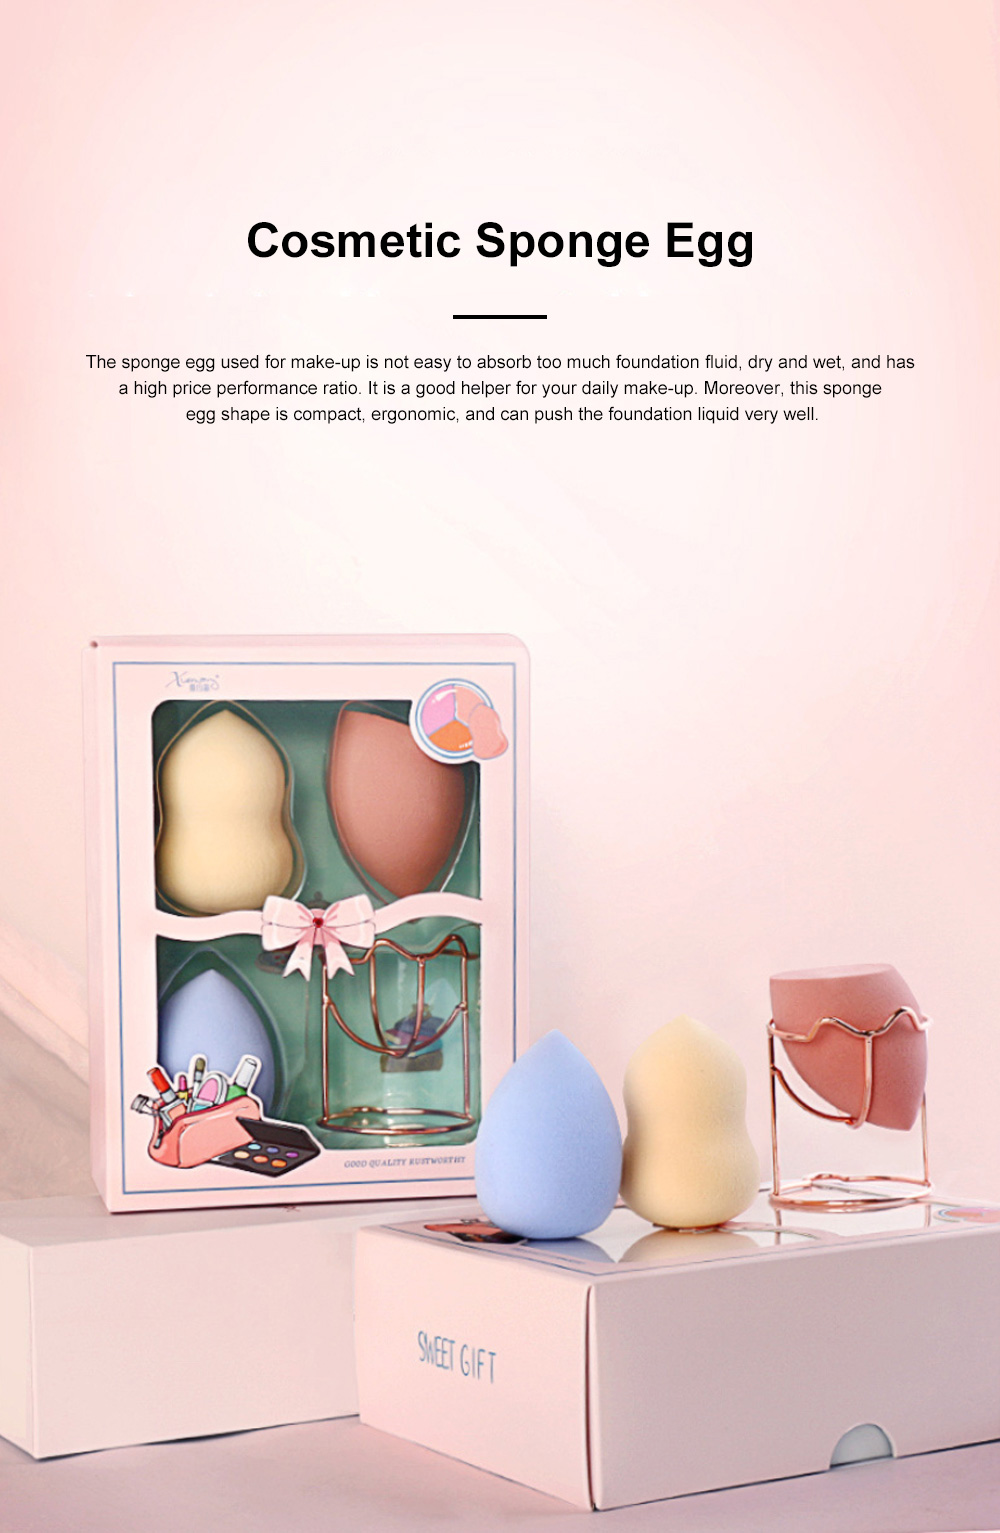 Cosmetic Sponge Egg Dry and Wet Gourd Puff Cosmetic Sponge Egg Cosmetic With Sponge Egg Shelf 3pcs Gift Box 0